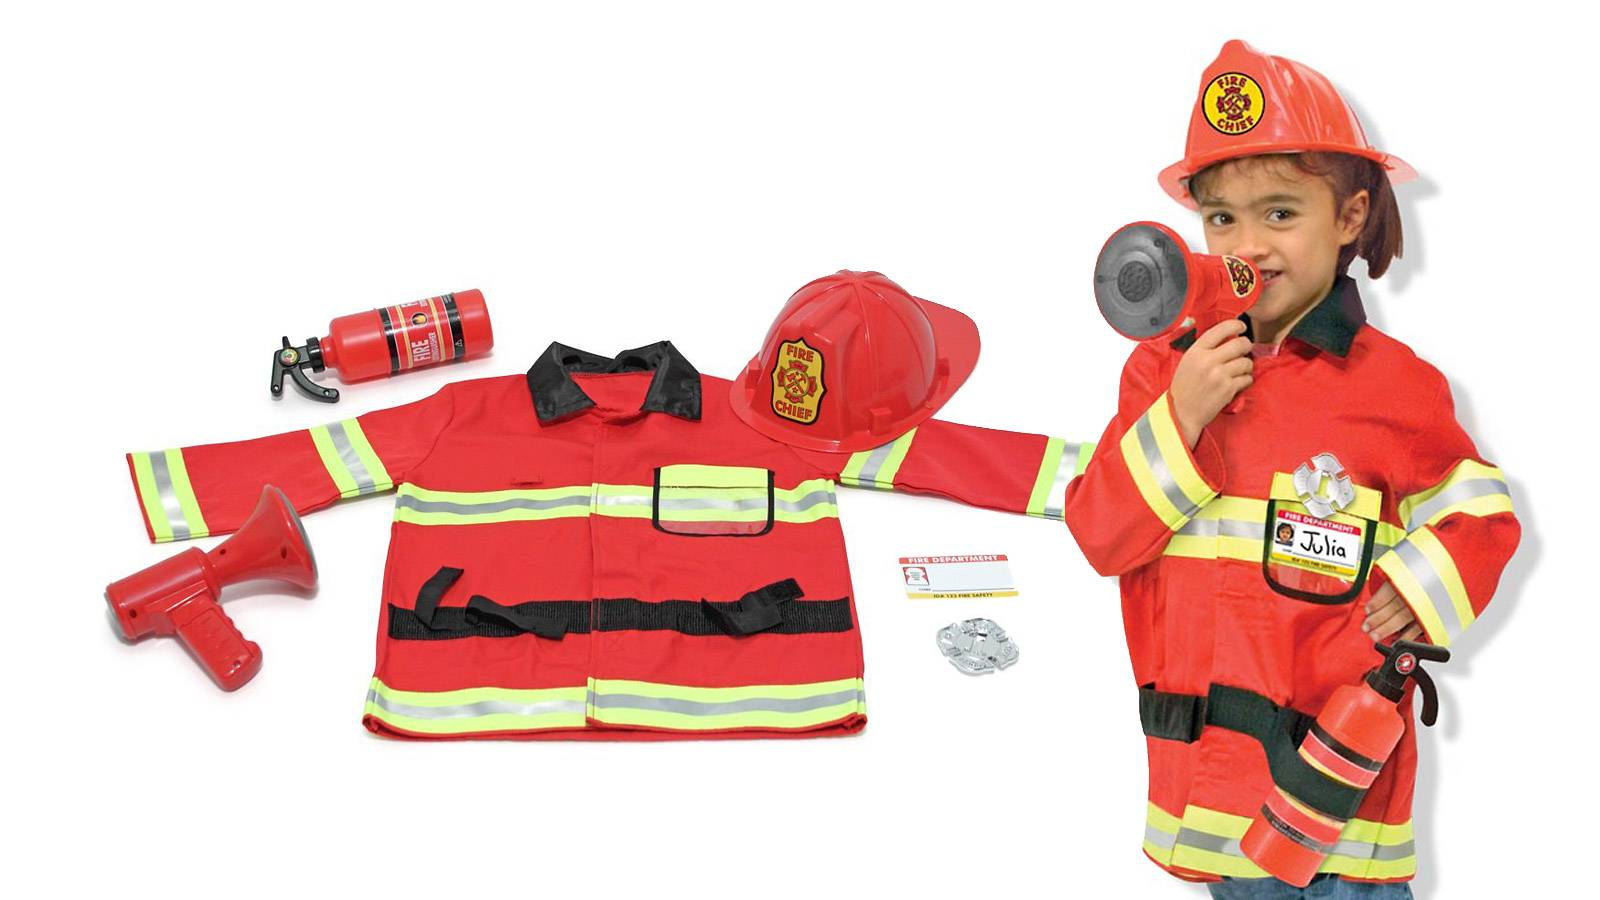 Tots-BUYER'S-GUIDE-9-best-role-playing-toys-for-toddlers-MELISSA-DOUG-FIREMAN